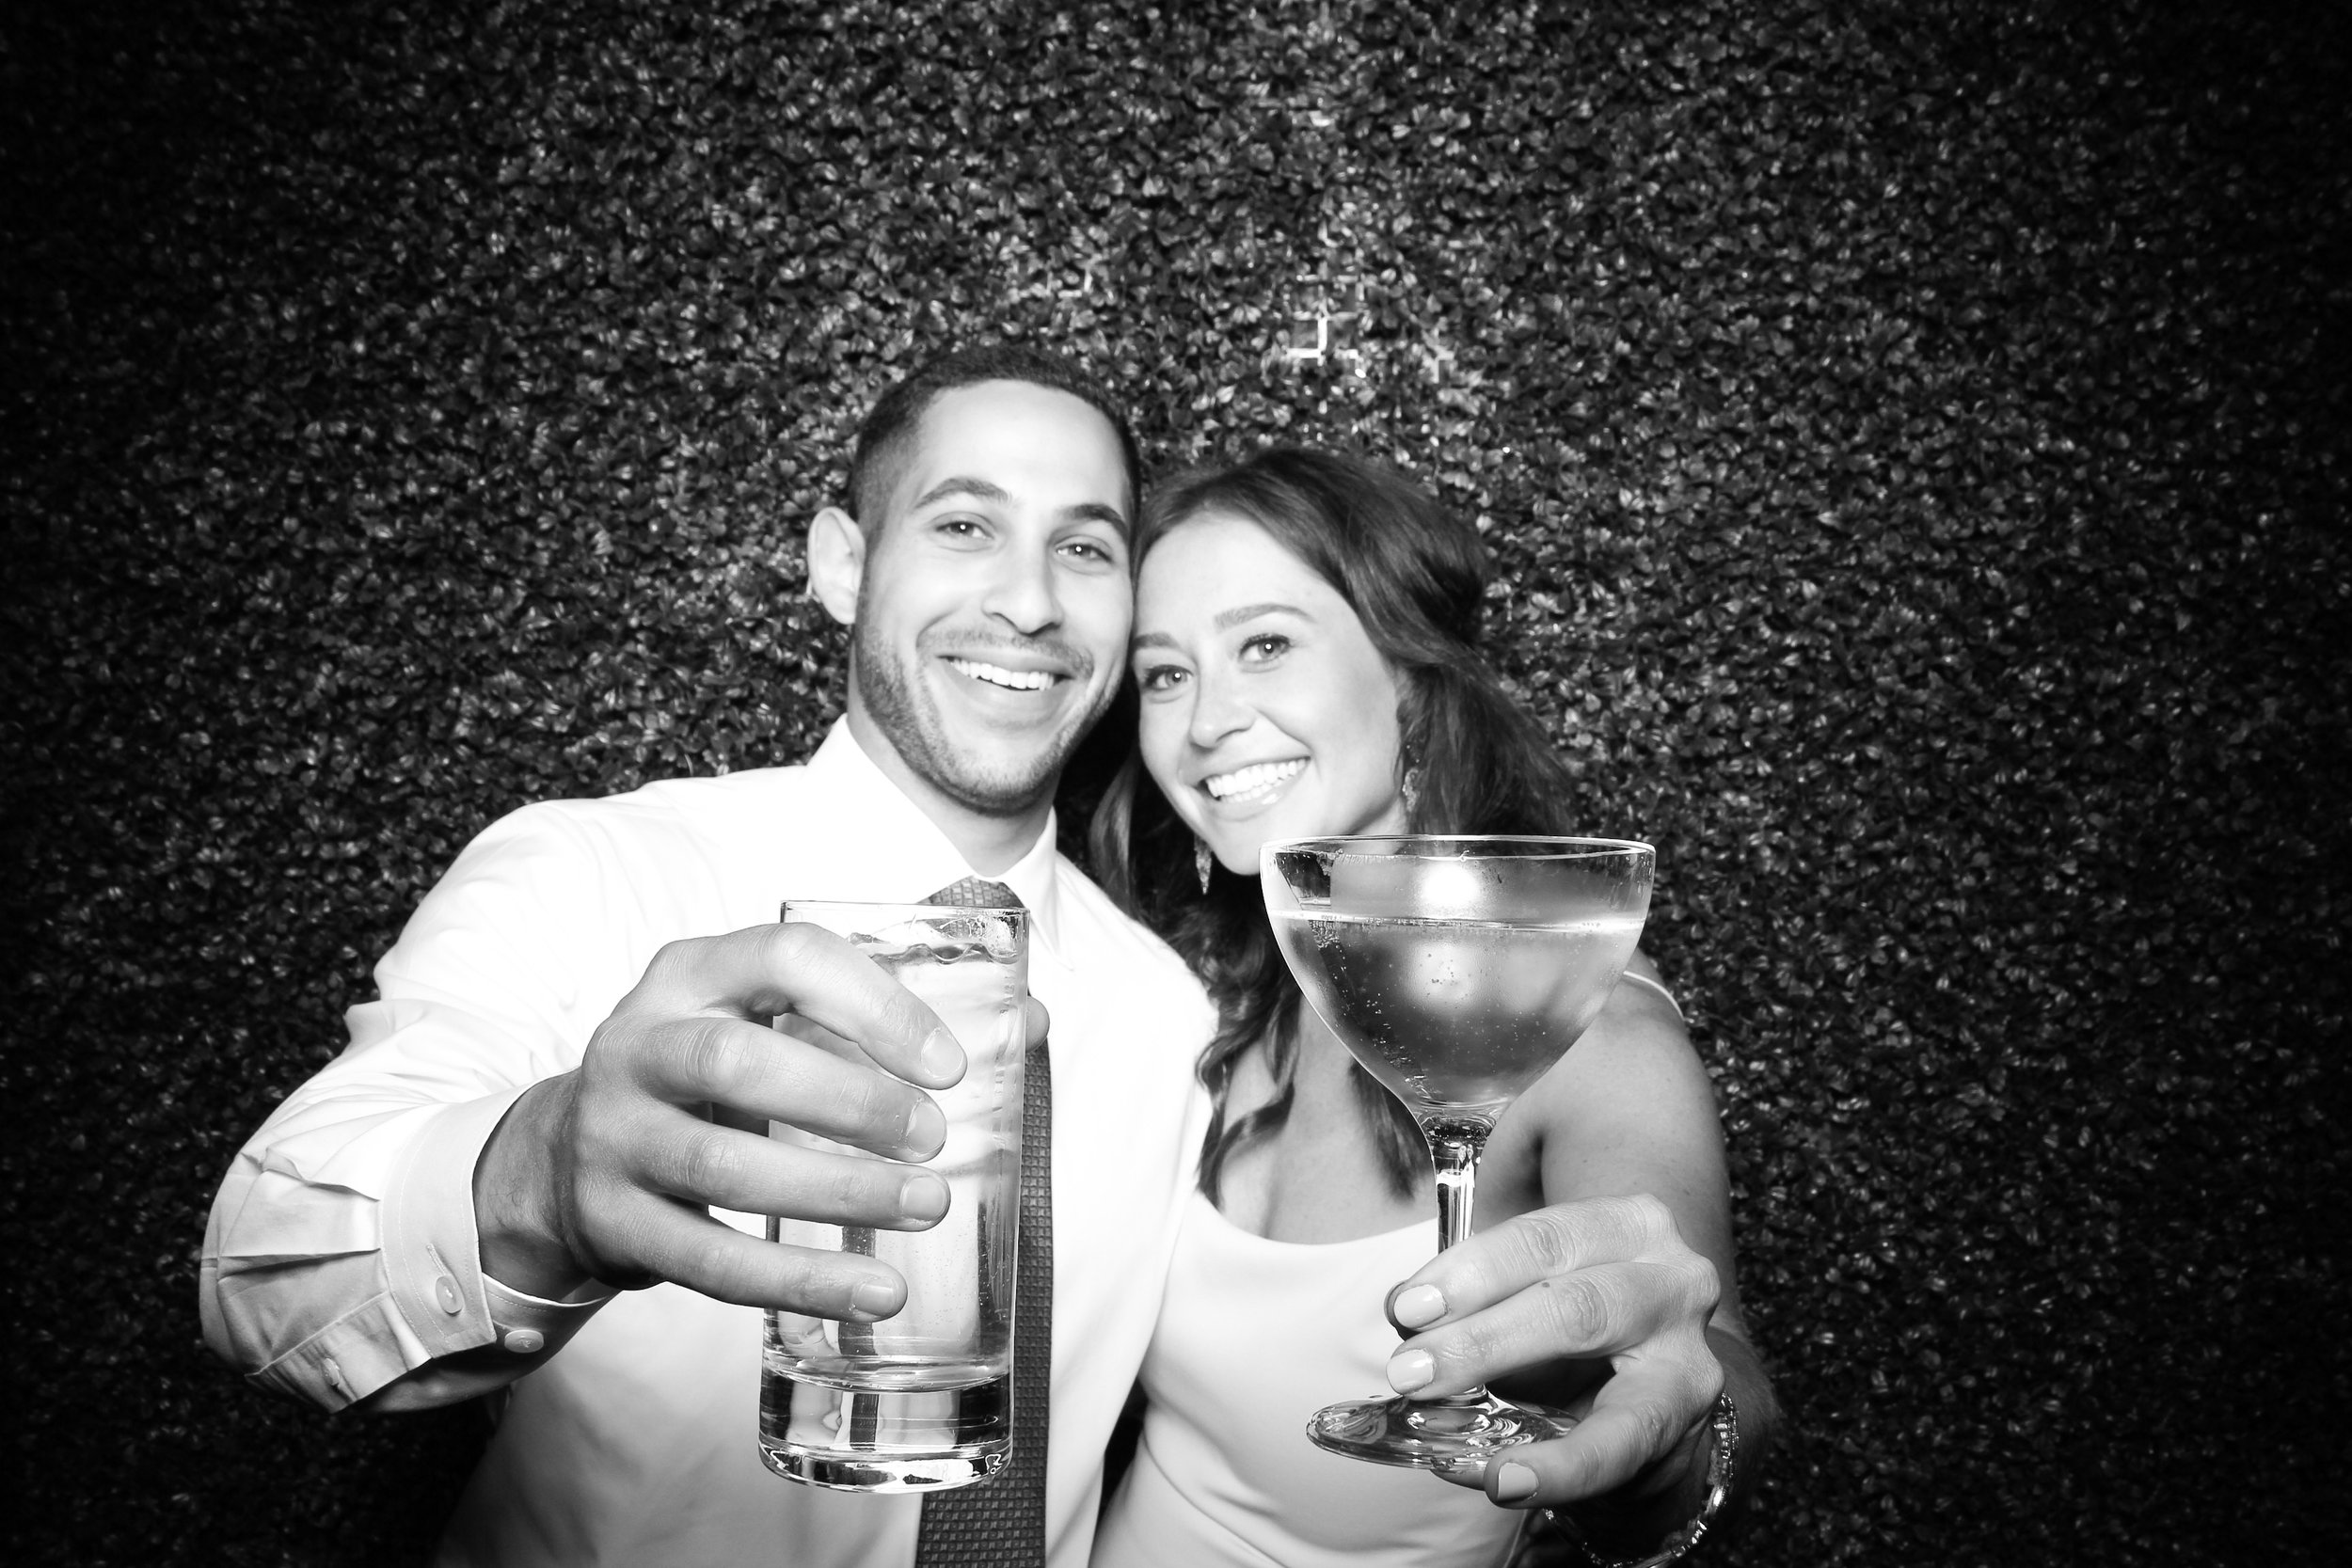 Ivy_Room_Chicago_Photo_Booth_Wedding_03.jpg